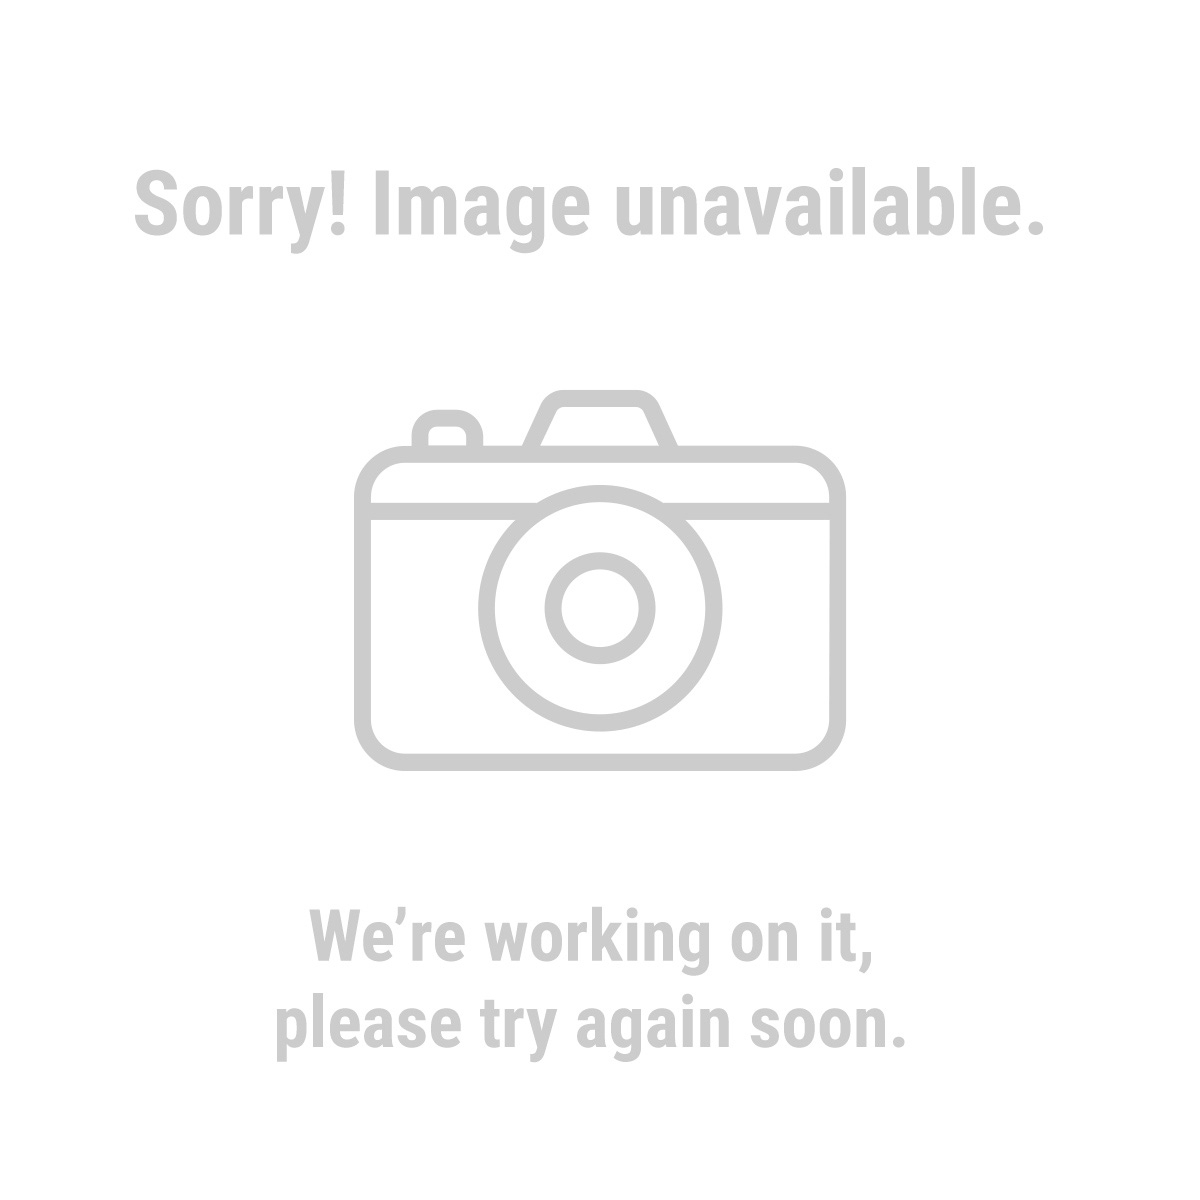 Western Safety 94103 Lumbar Support Belt - Medium